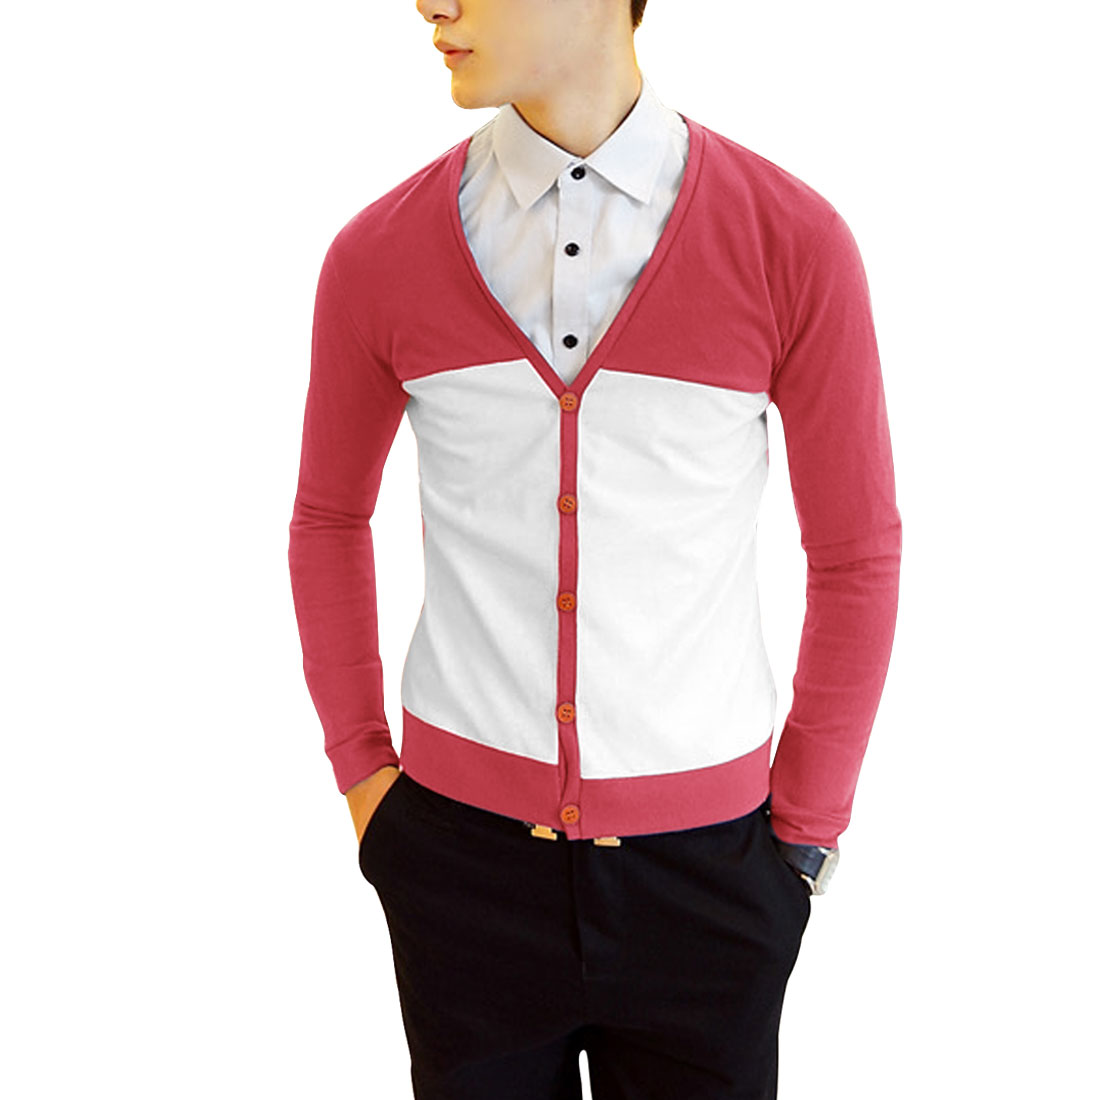 Chic Watermelon Red White Contrast Color Casual Cardigan for Man S